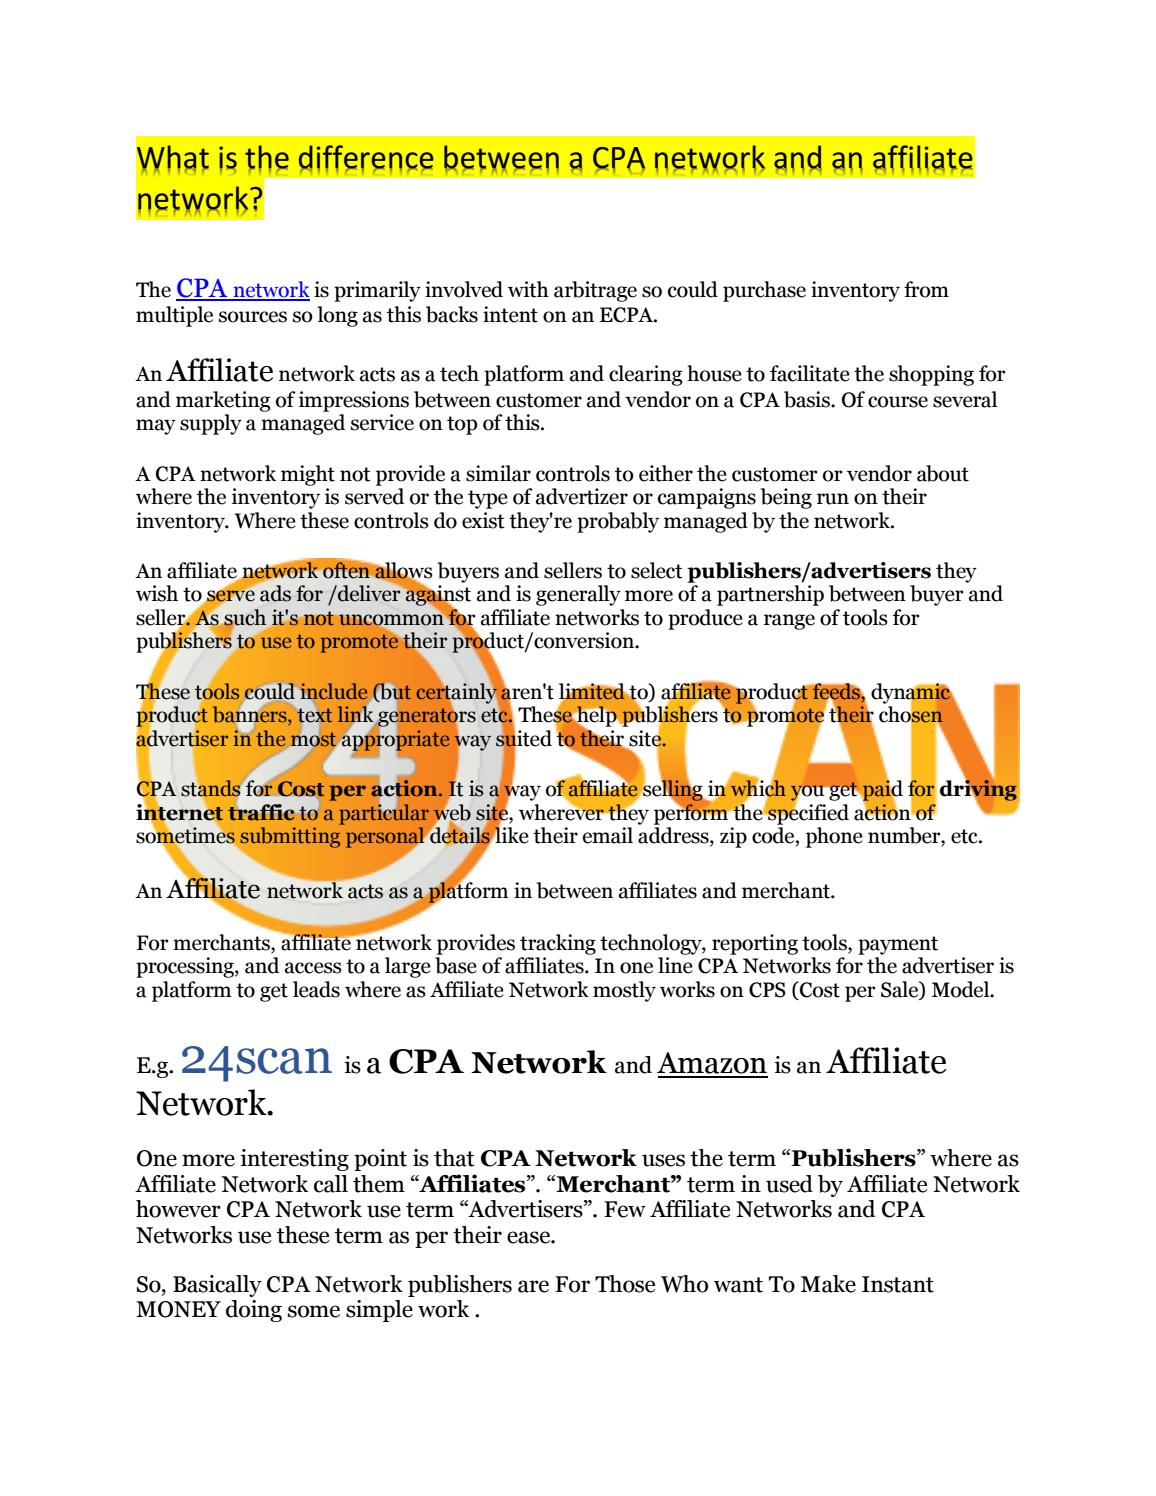 What is The Difference Between CPA and Affiliate by 24scan